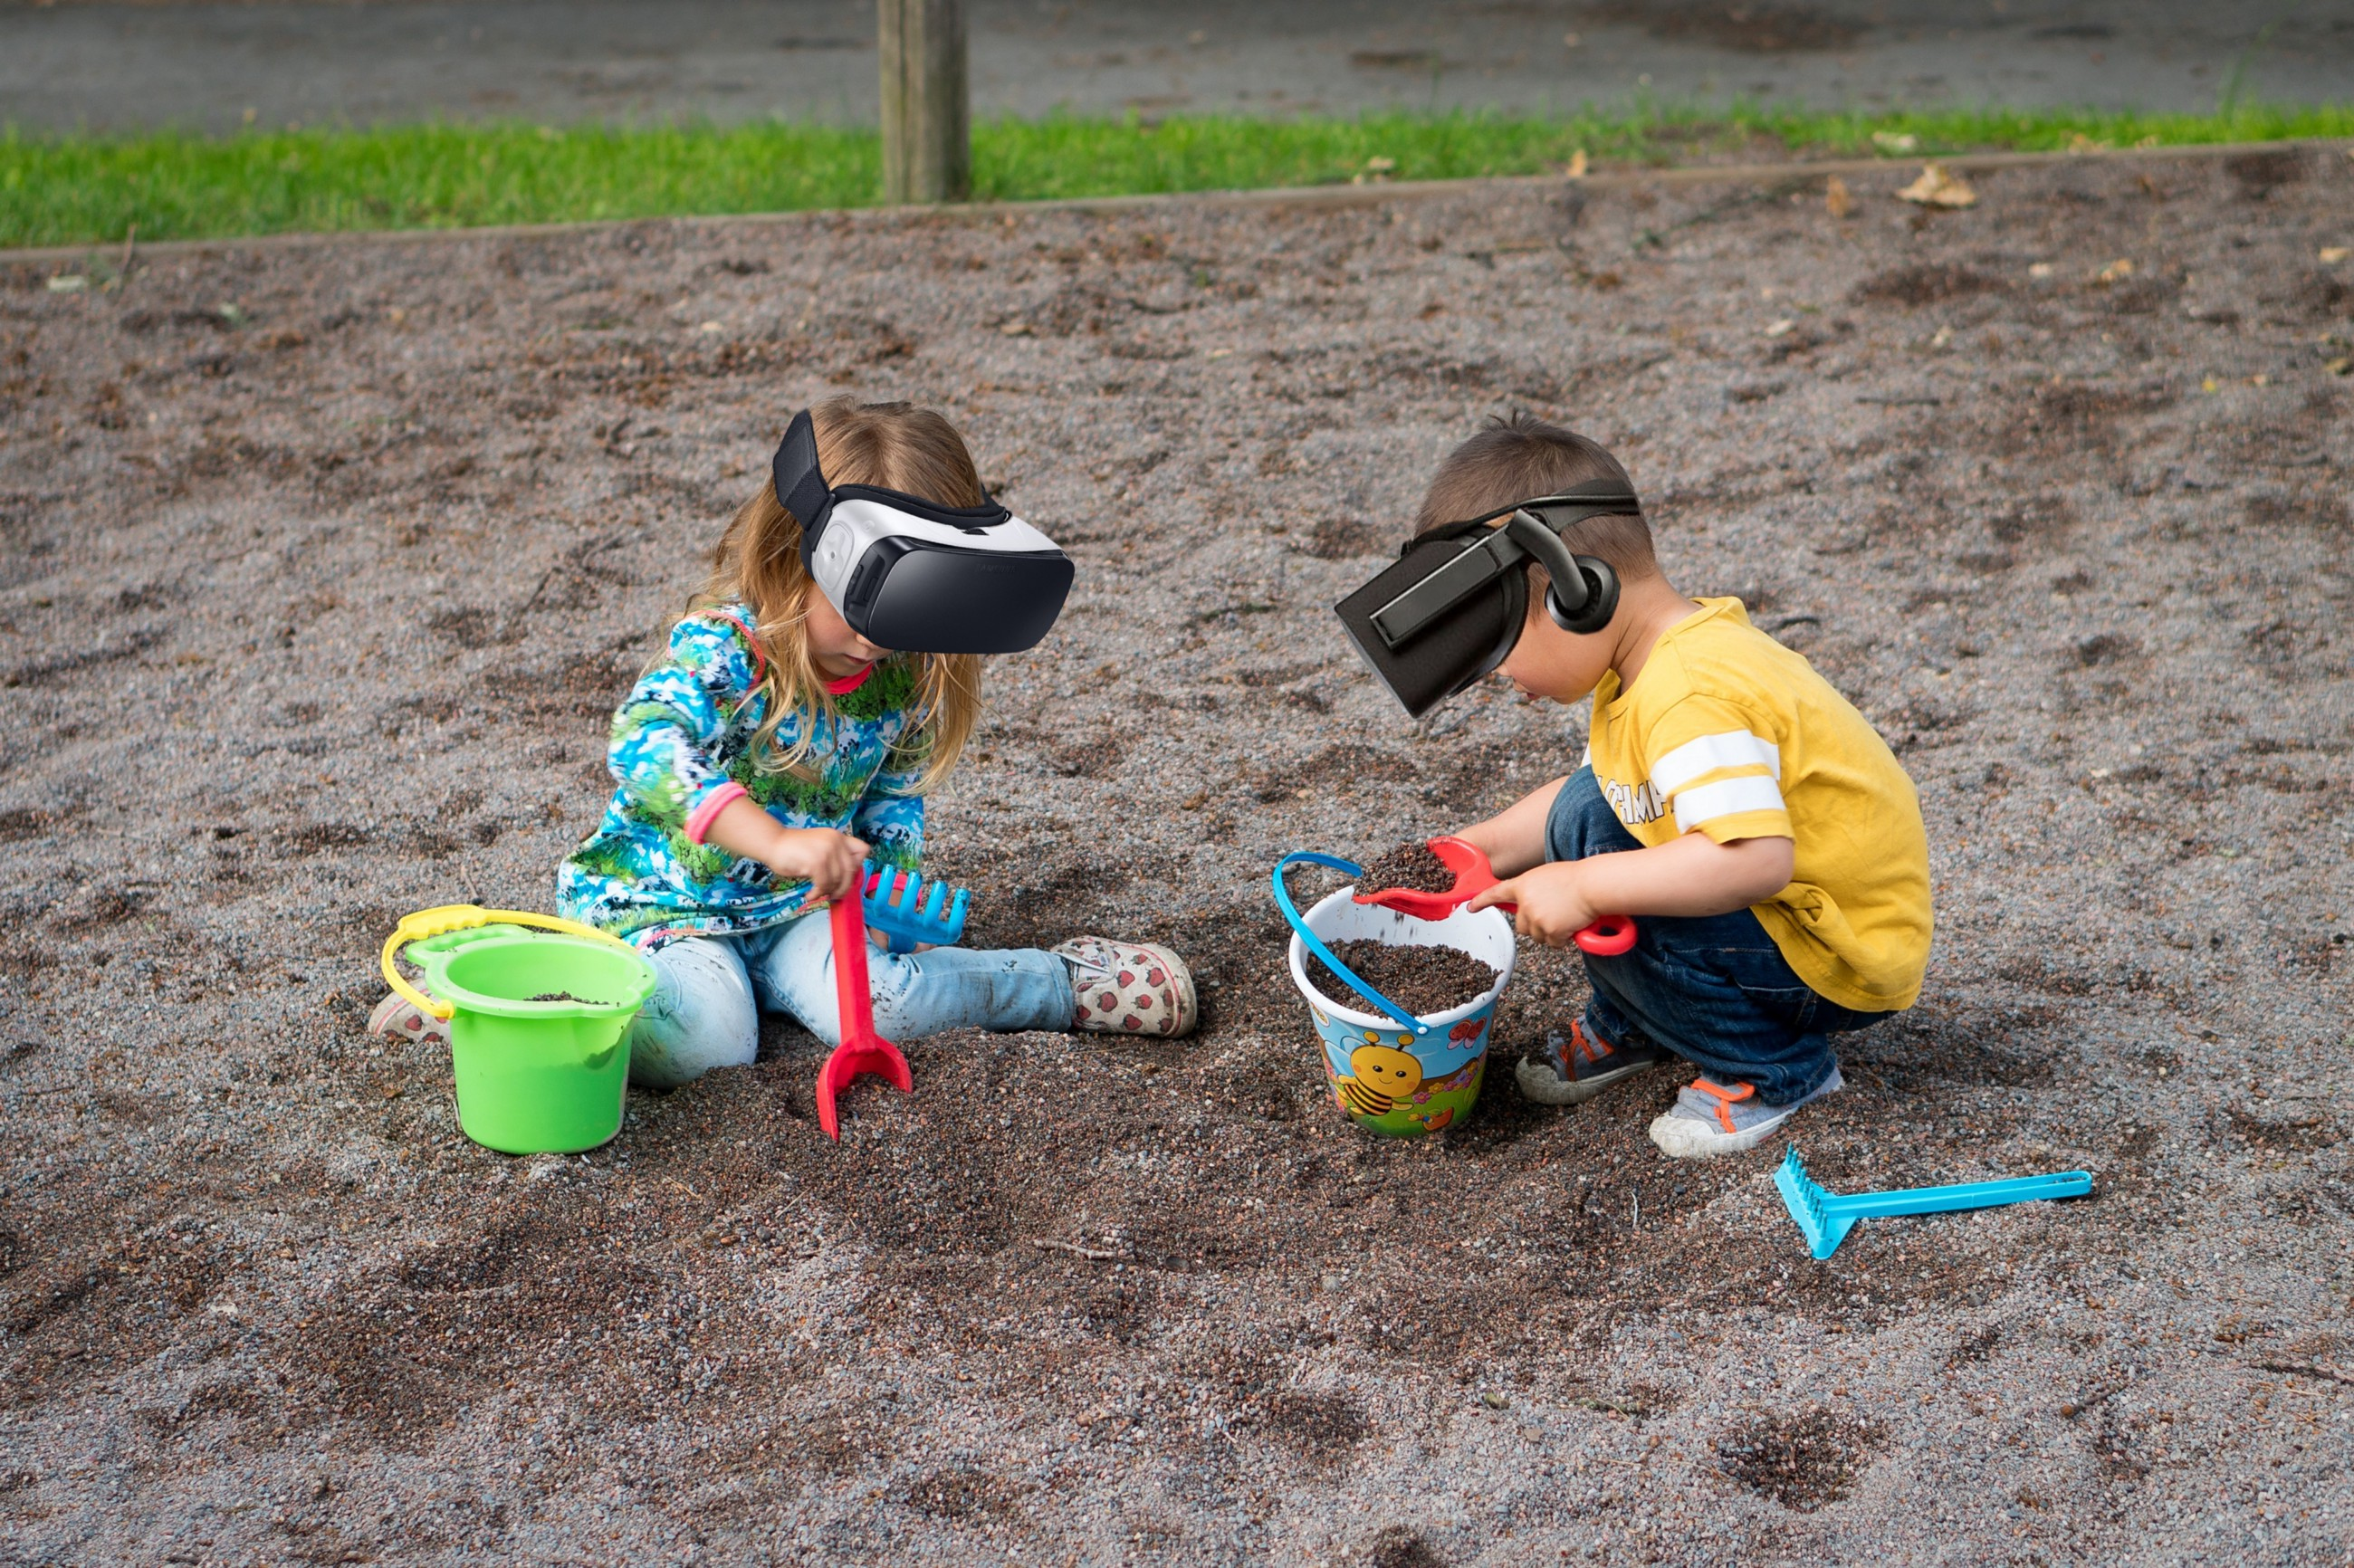 /social-vr-yup-were-toddlers-again-back-to-parallel-play-14aa94a499c0 feature image